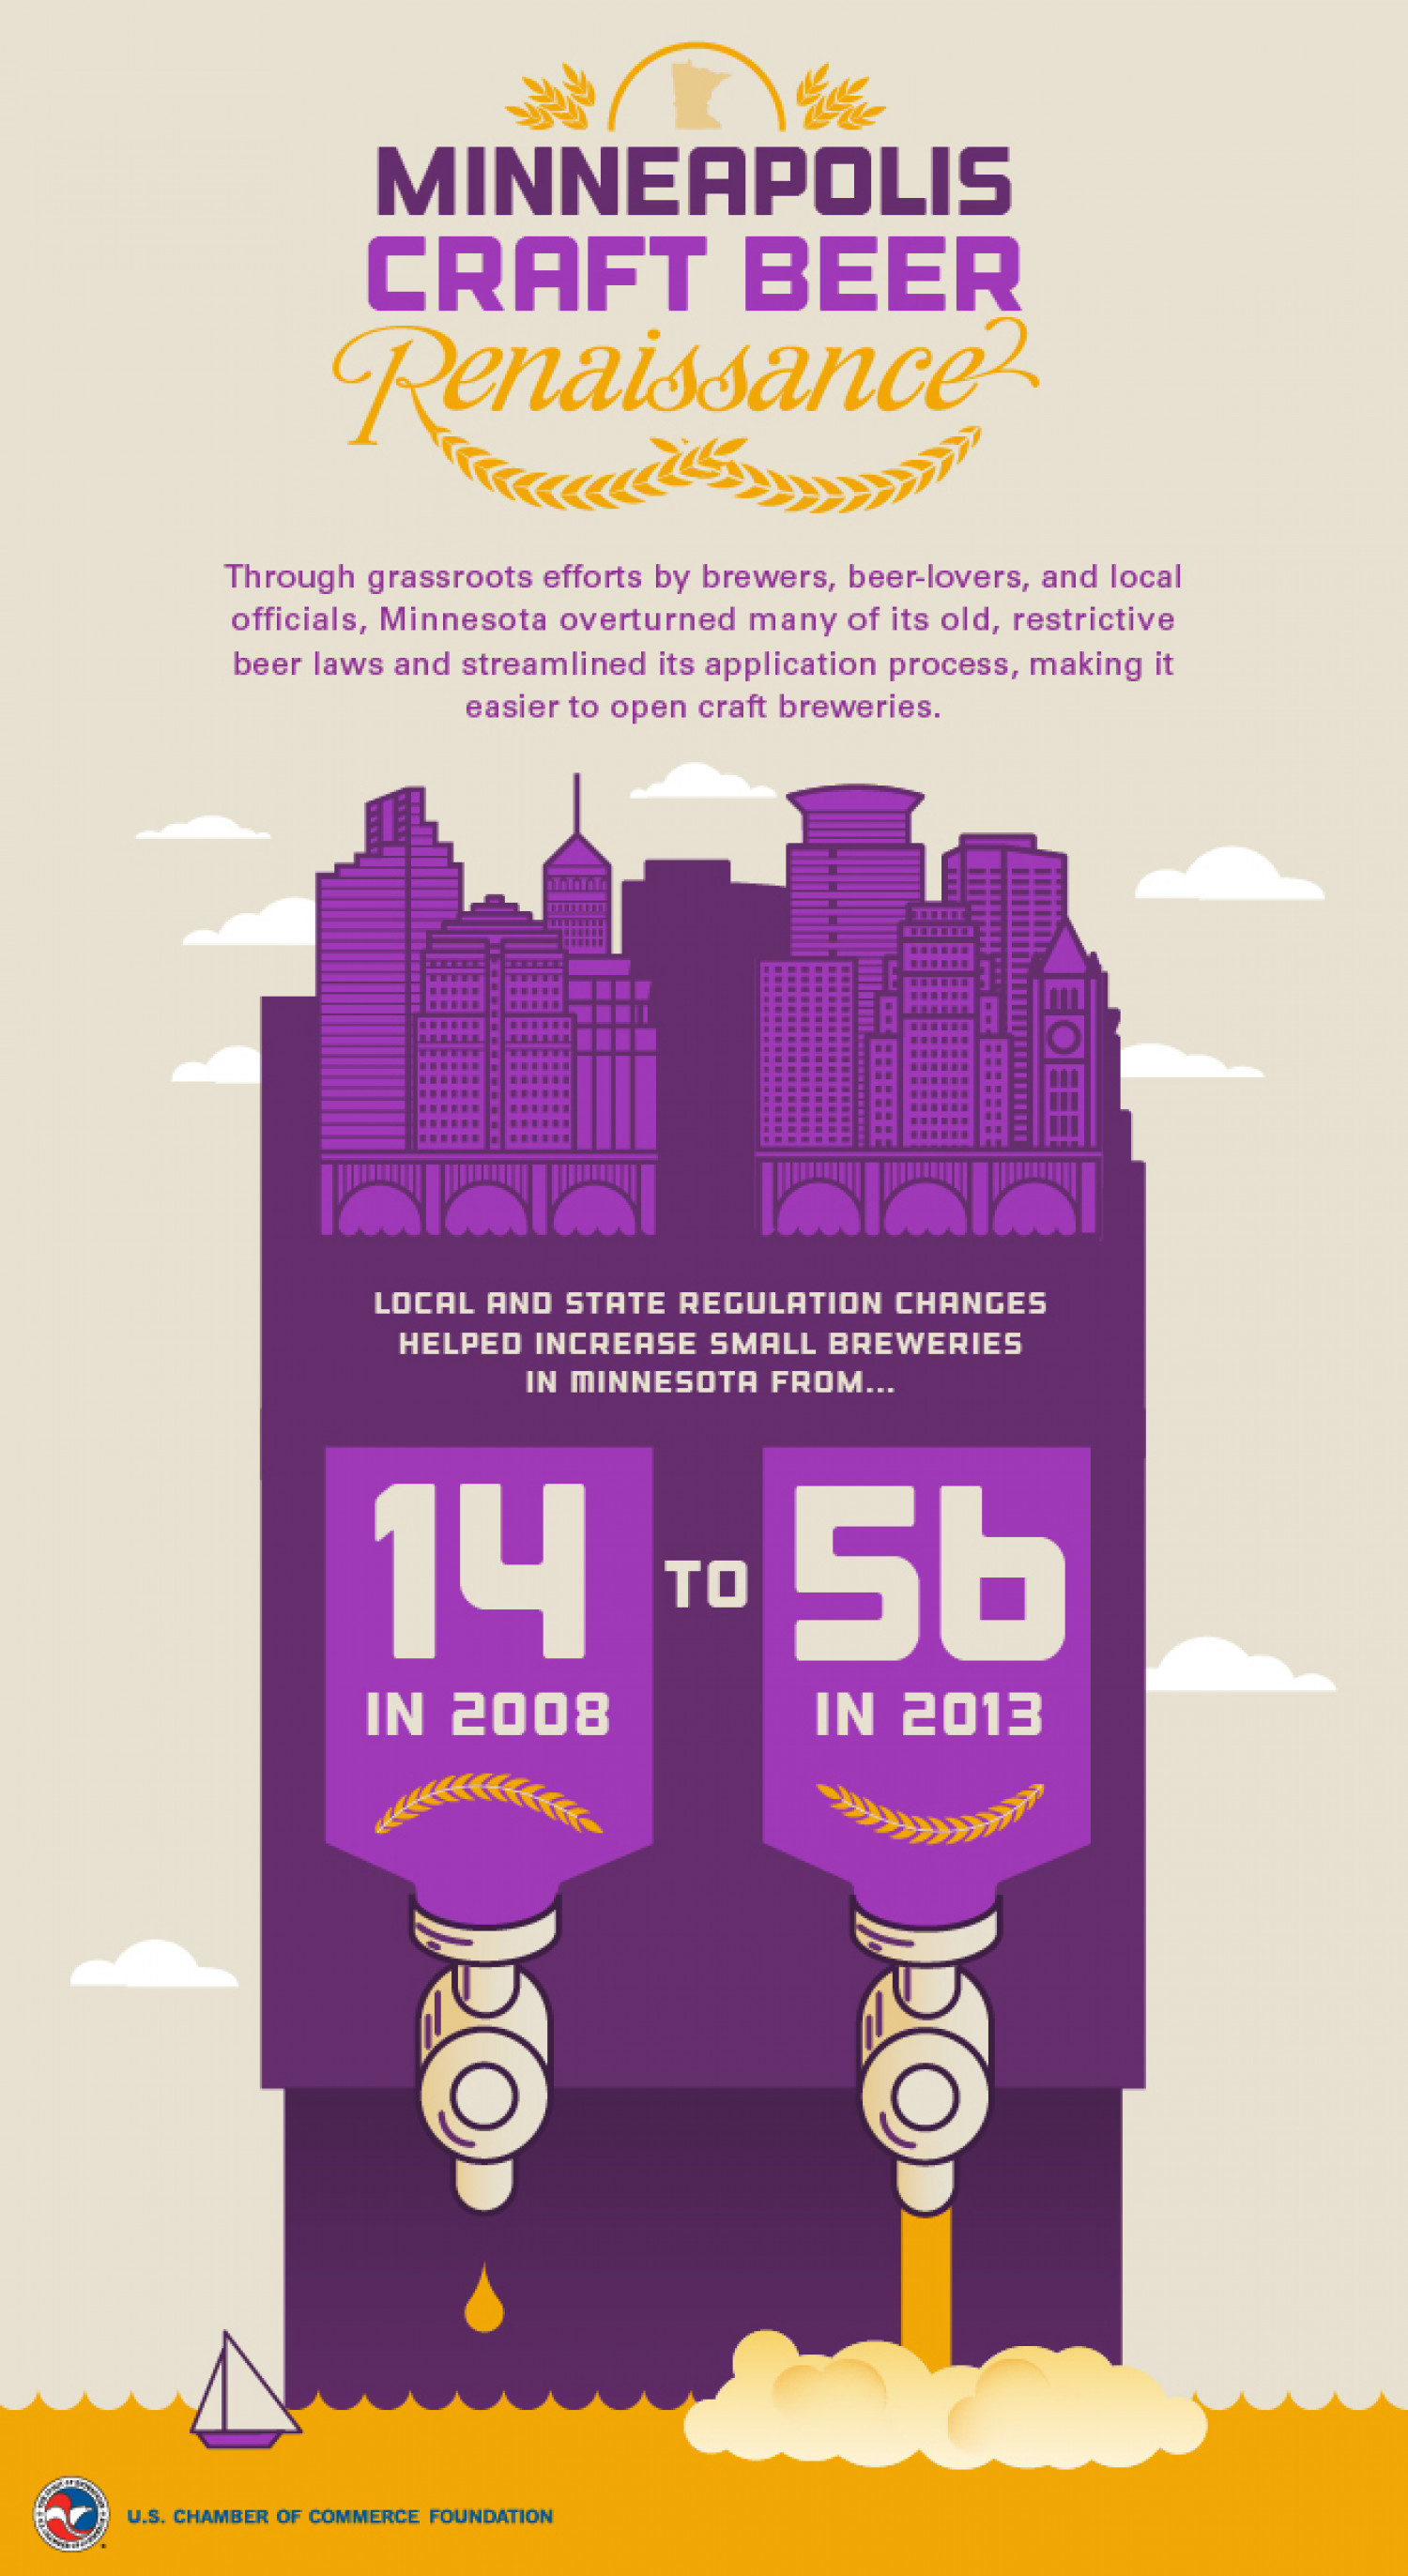 Minneapolis, MN: An Enterprising City Infographic